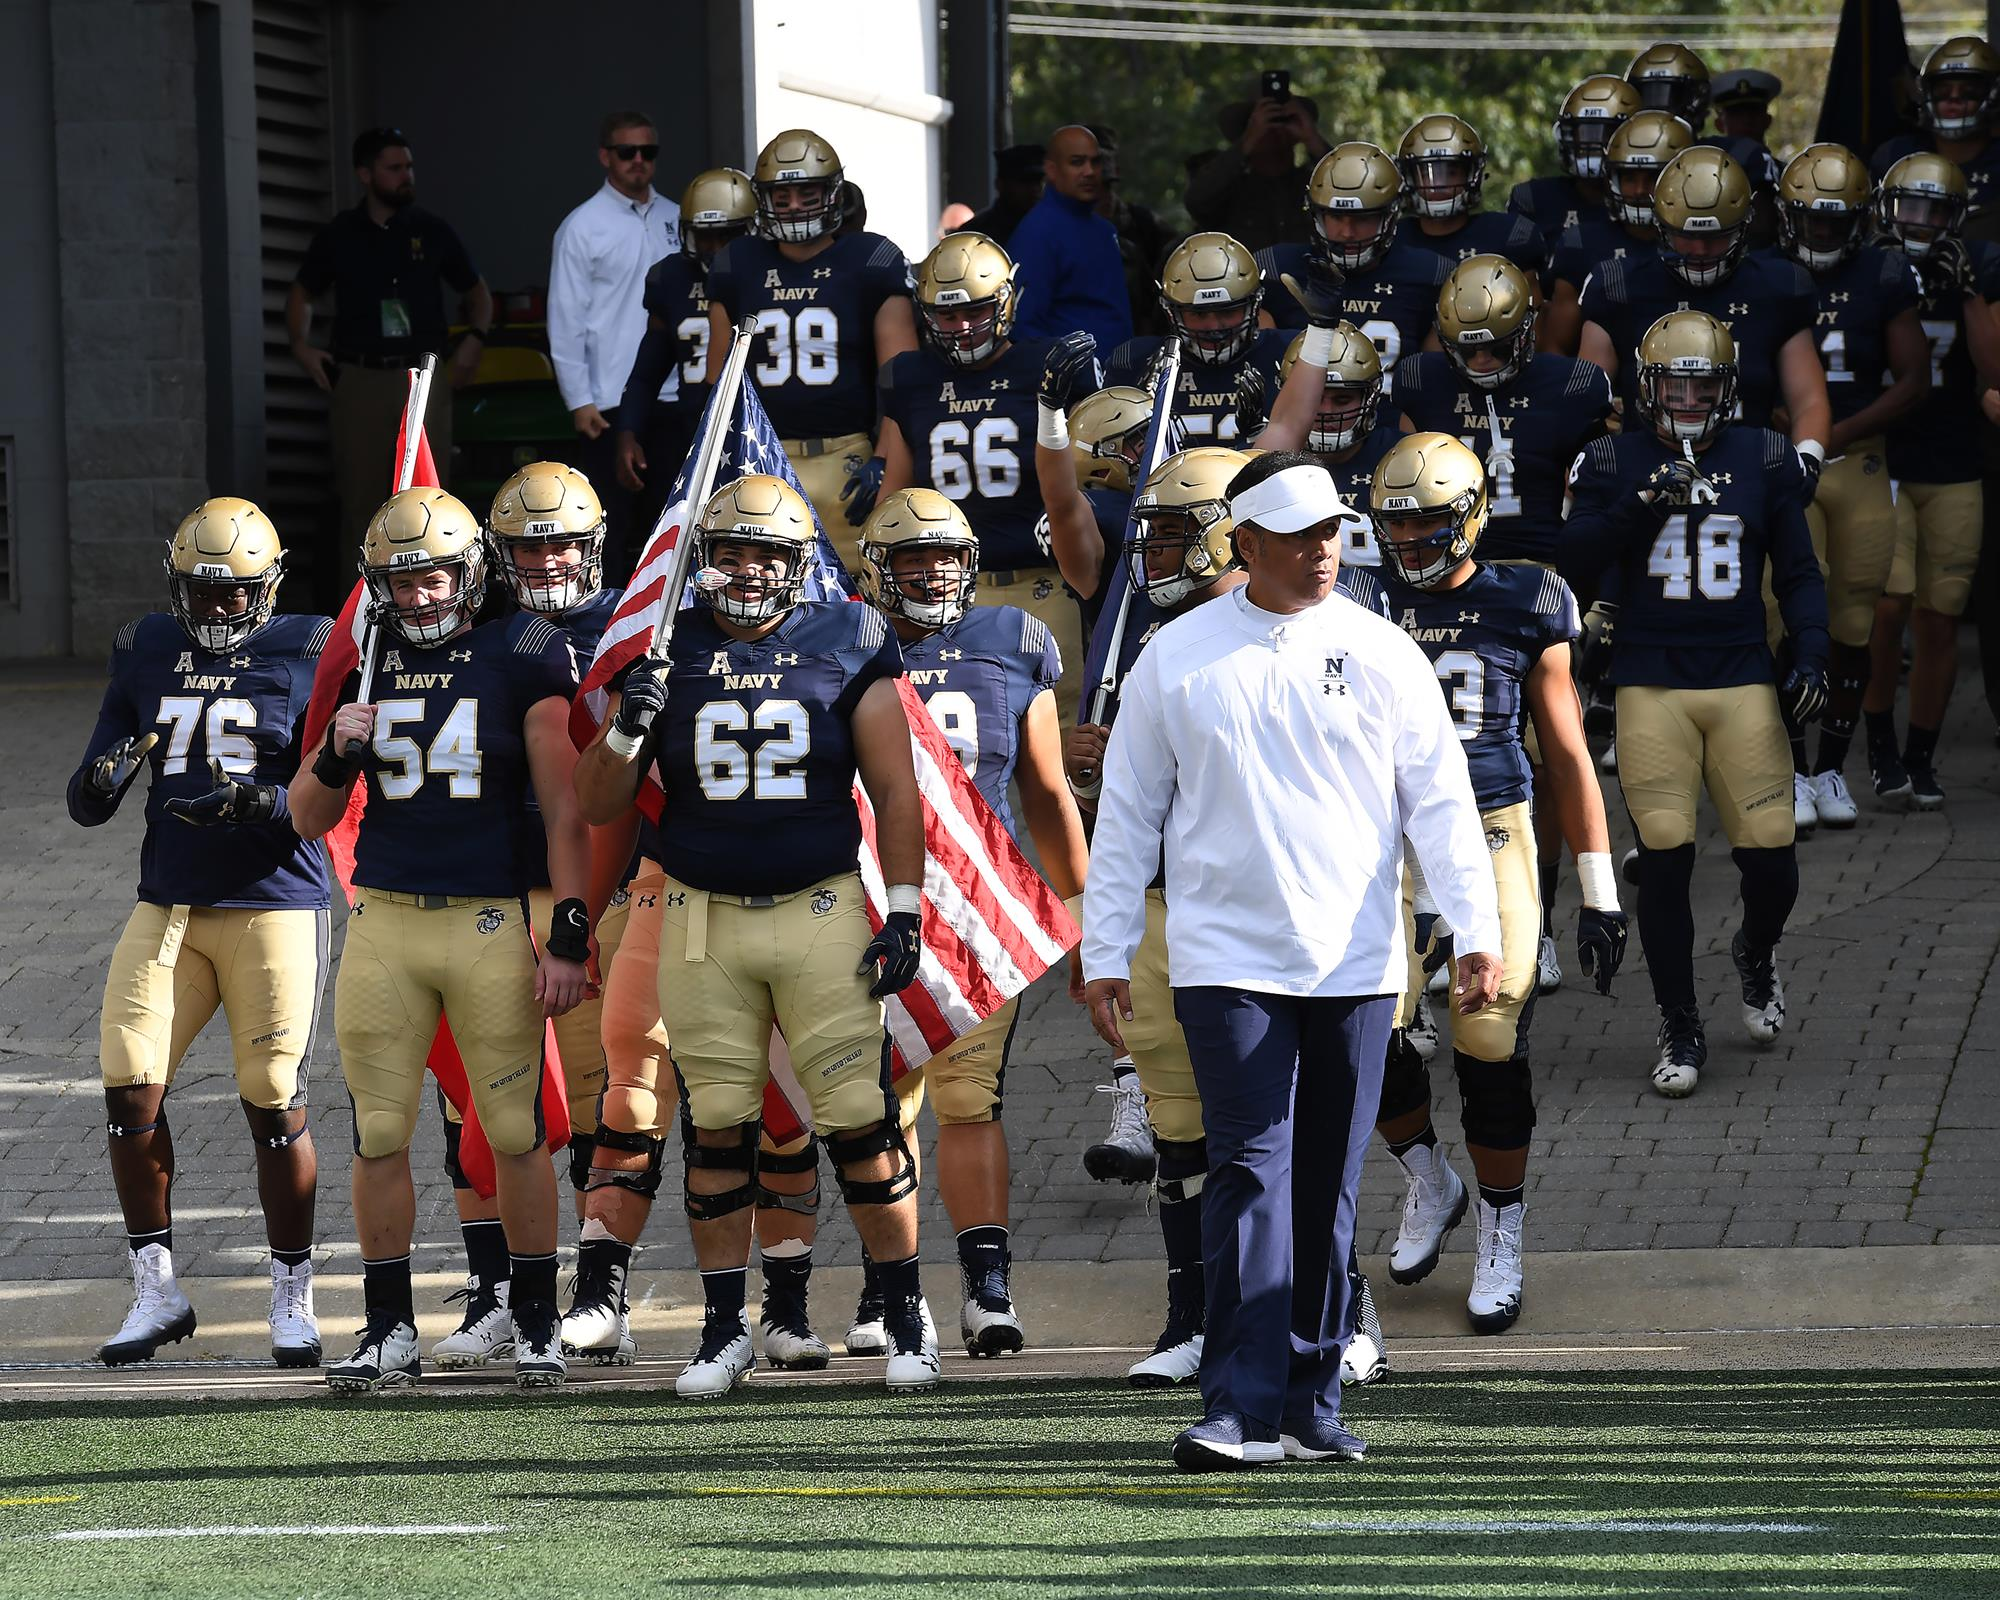 finest selection d4fc0 2544e Navy Football Seniors Receive Service Assignments - Naval ...